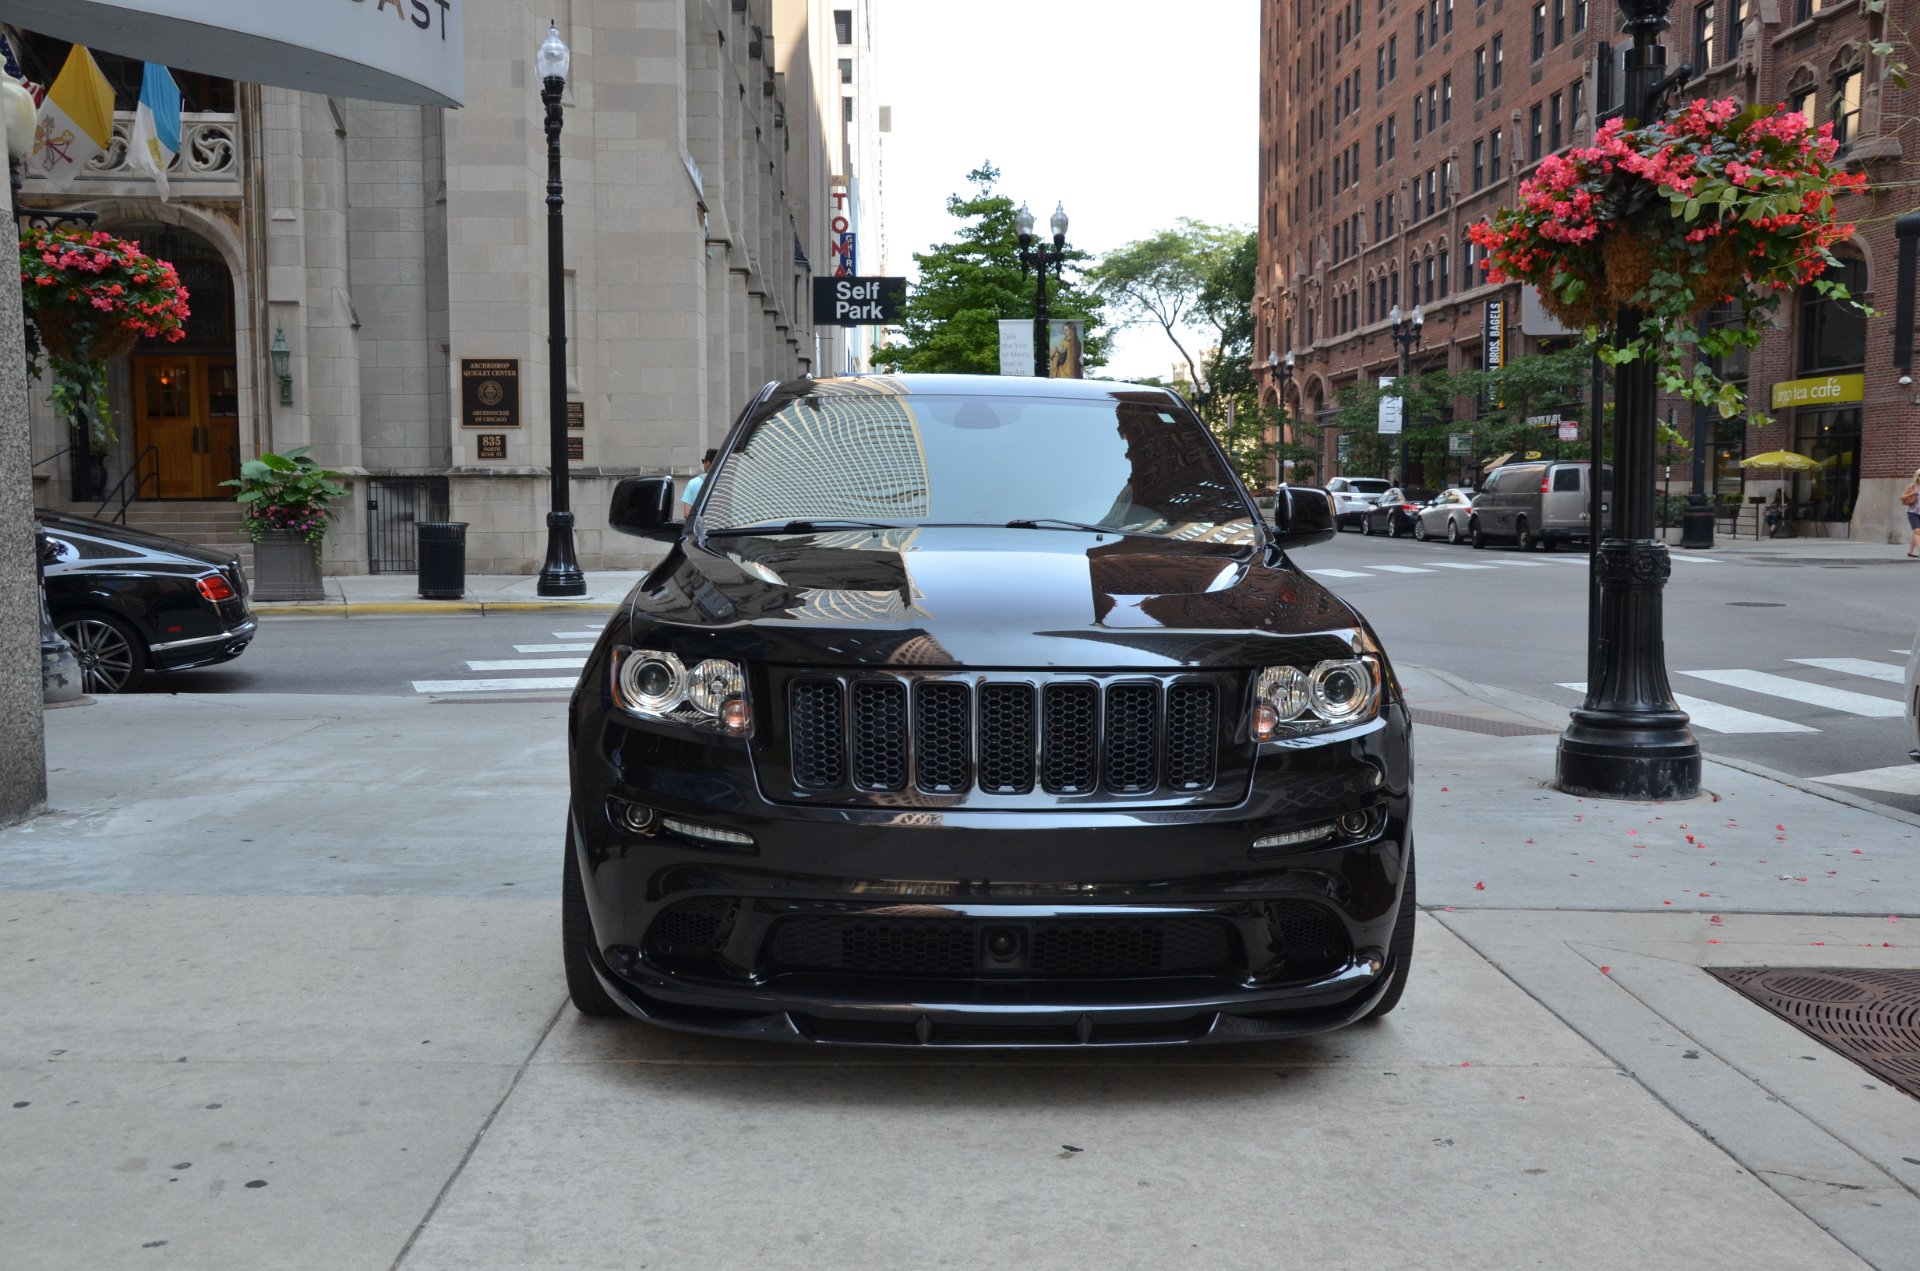 2012 jeep grand cherokee srt8 stock # r365c for sale near chicago